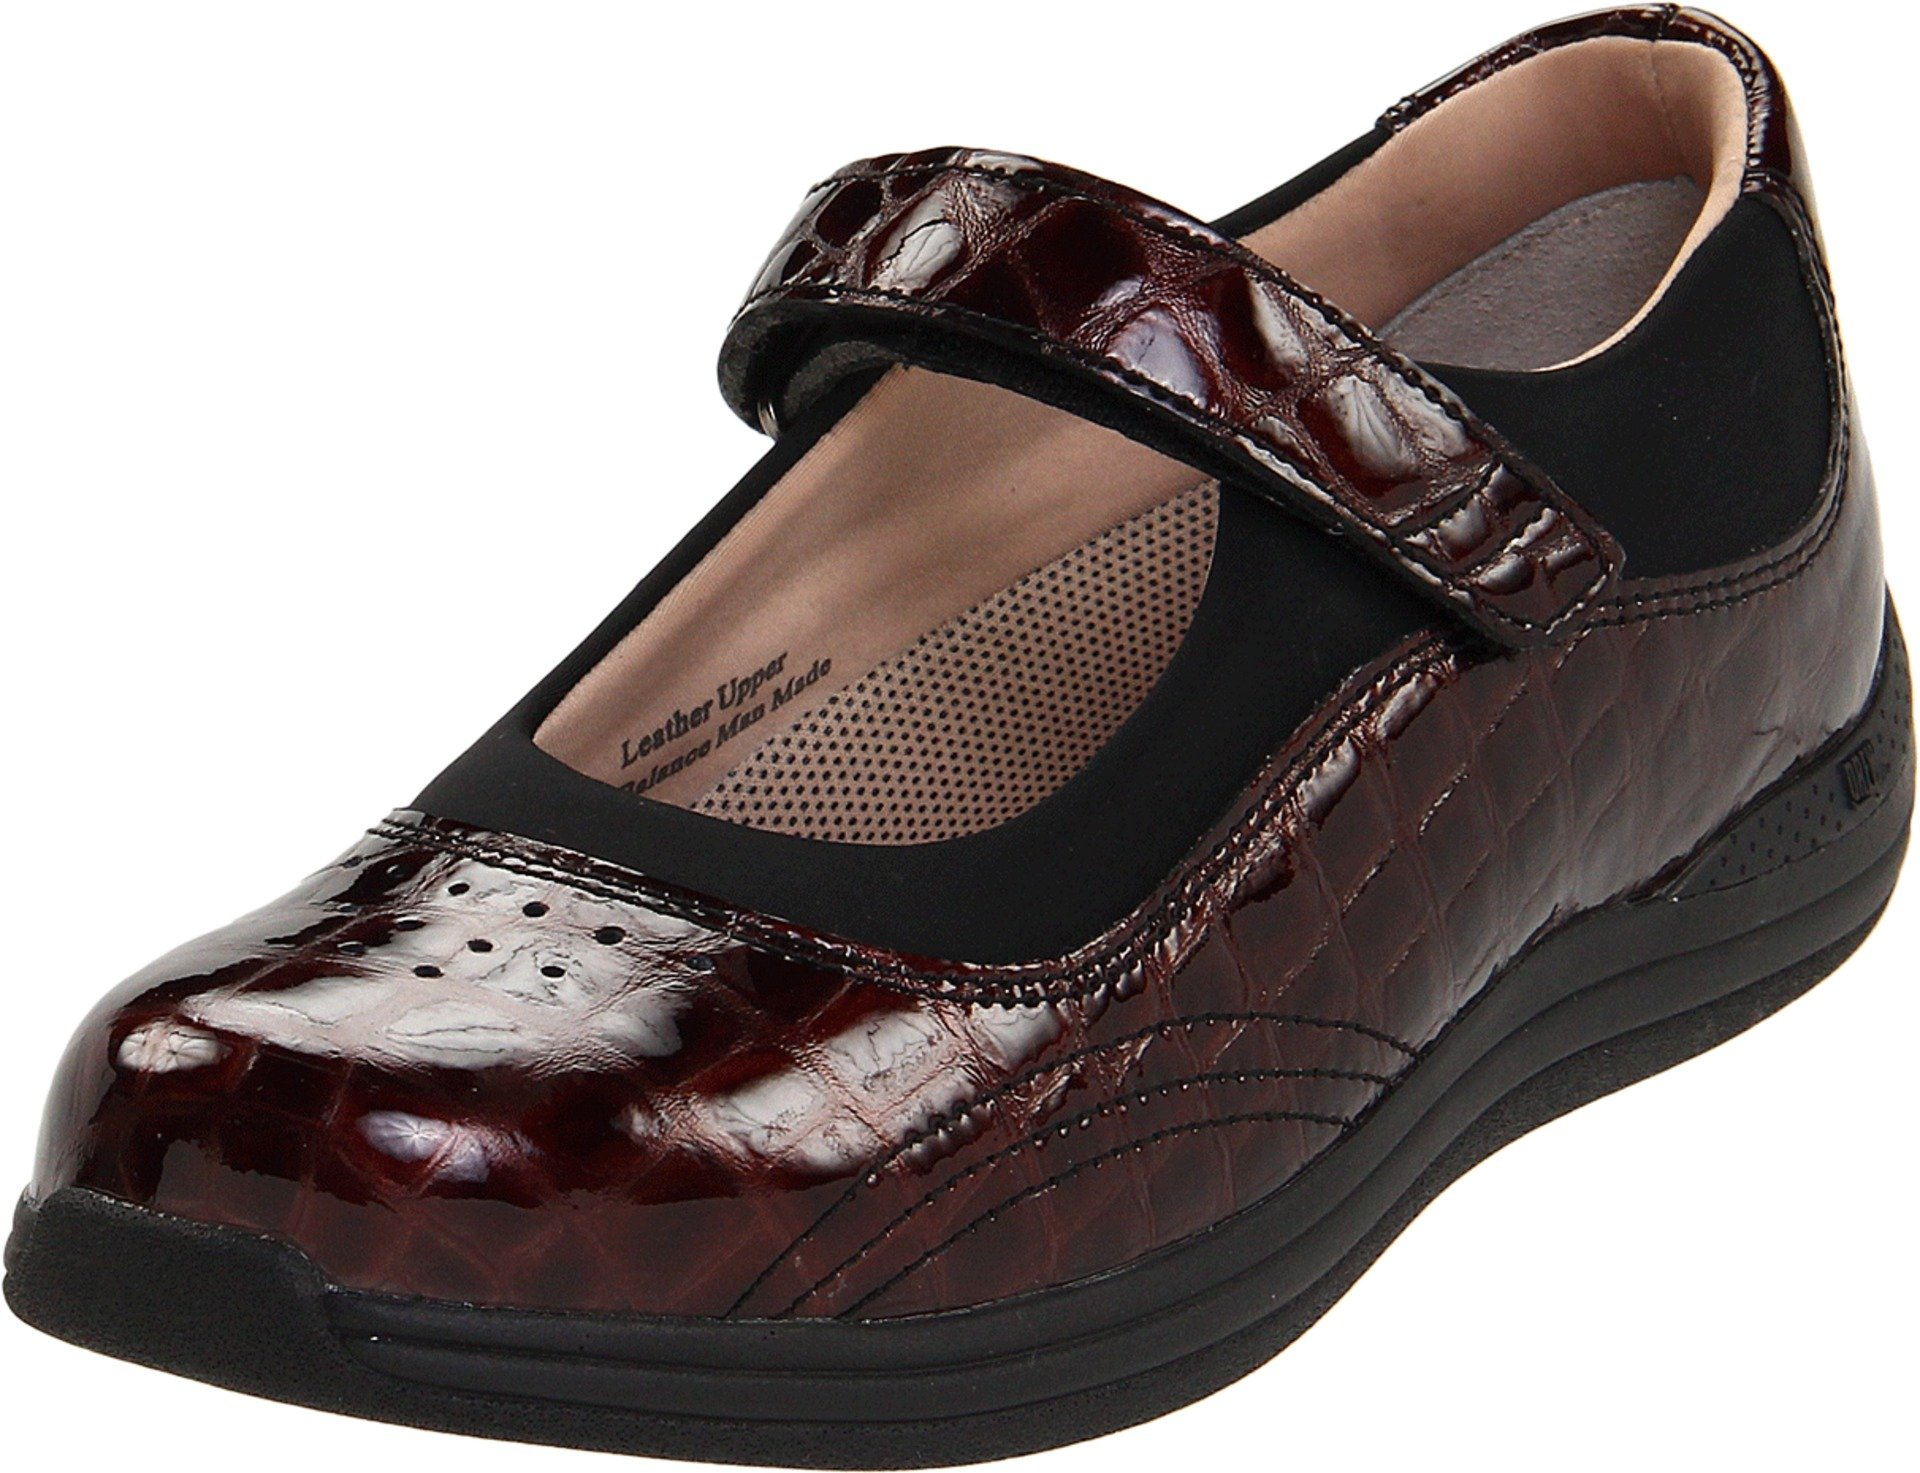 Drew Shoe Women's Rose Mary Jane,Brown Croc,9.5 WW US